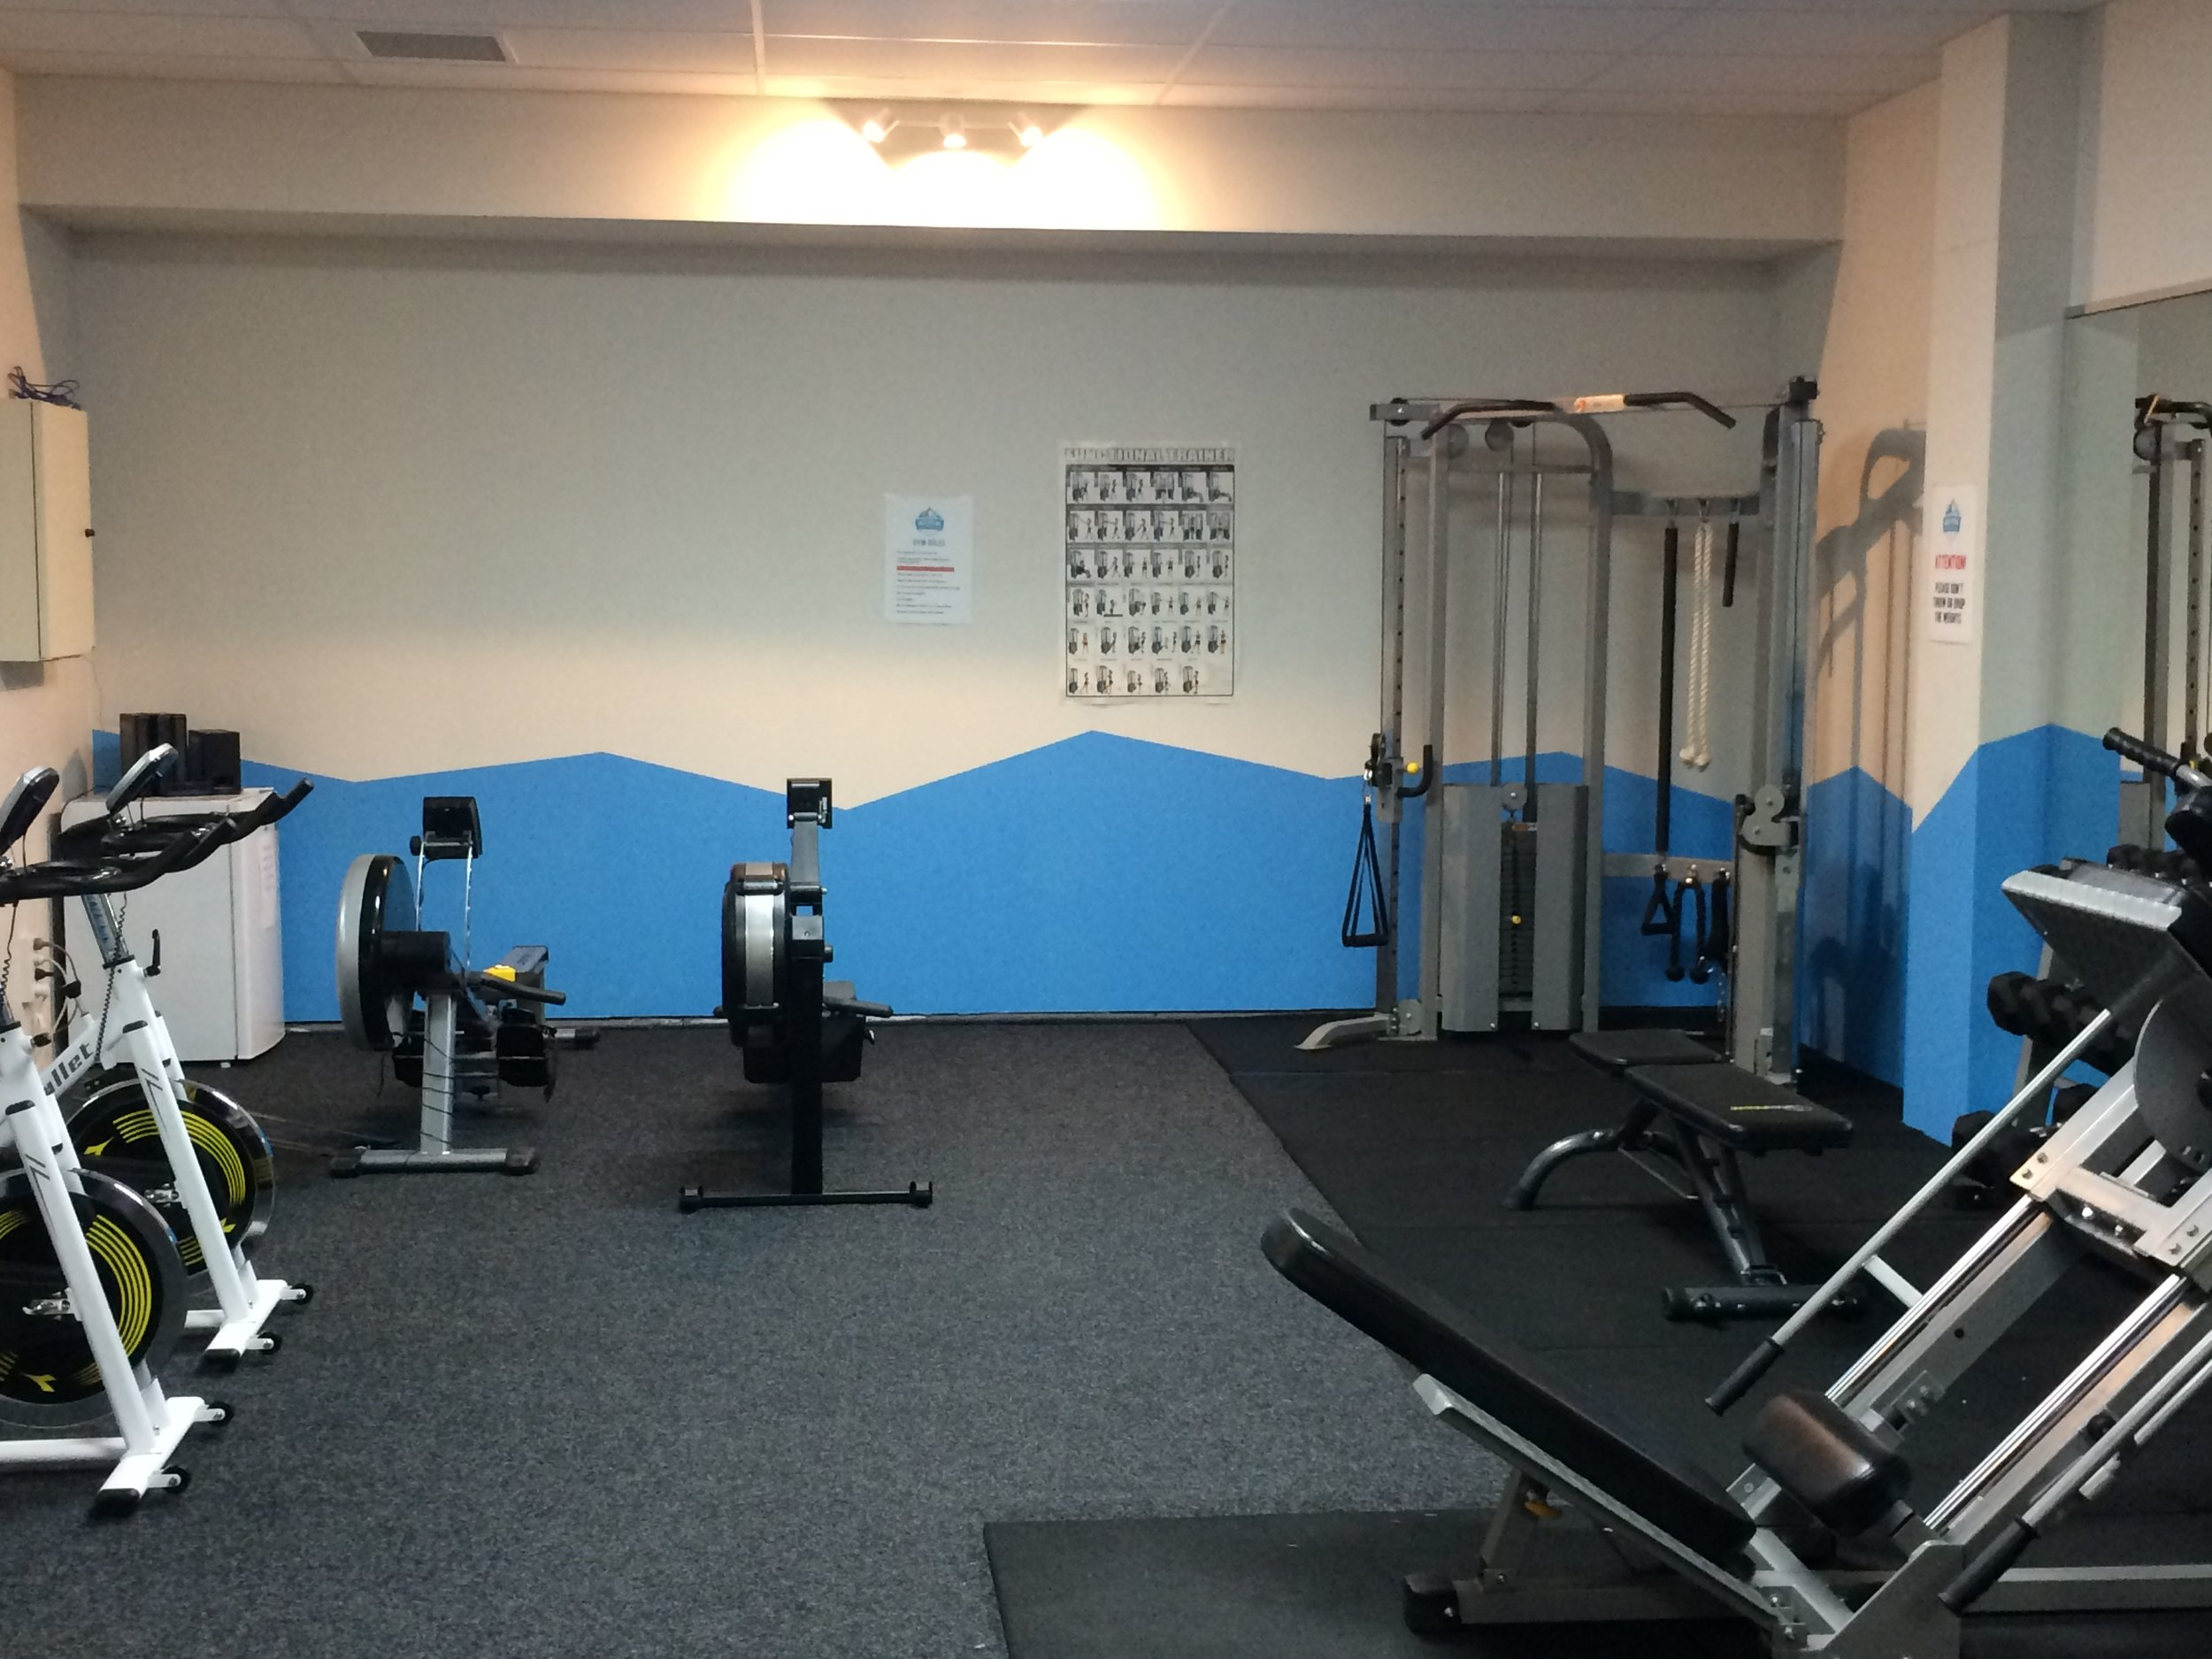 The cardio section with functional trainer